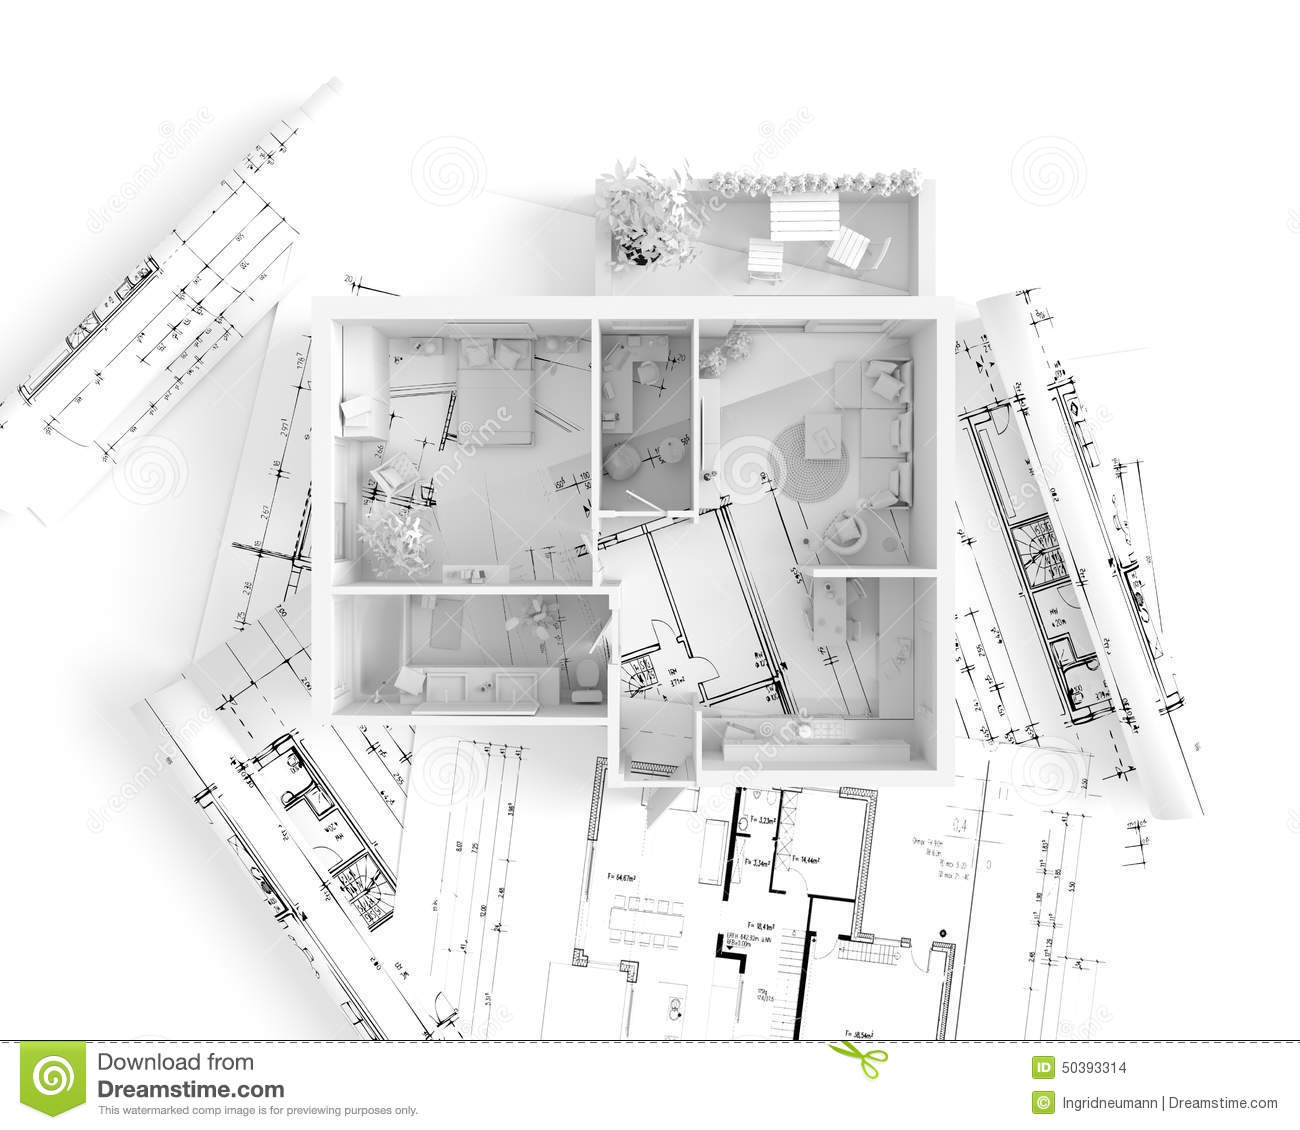 House plan top view interior design stock illustration House plan view